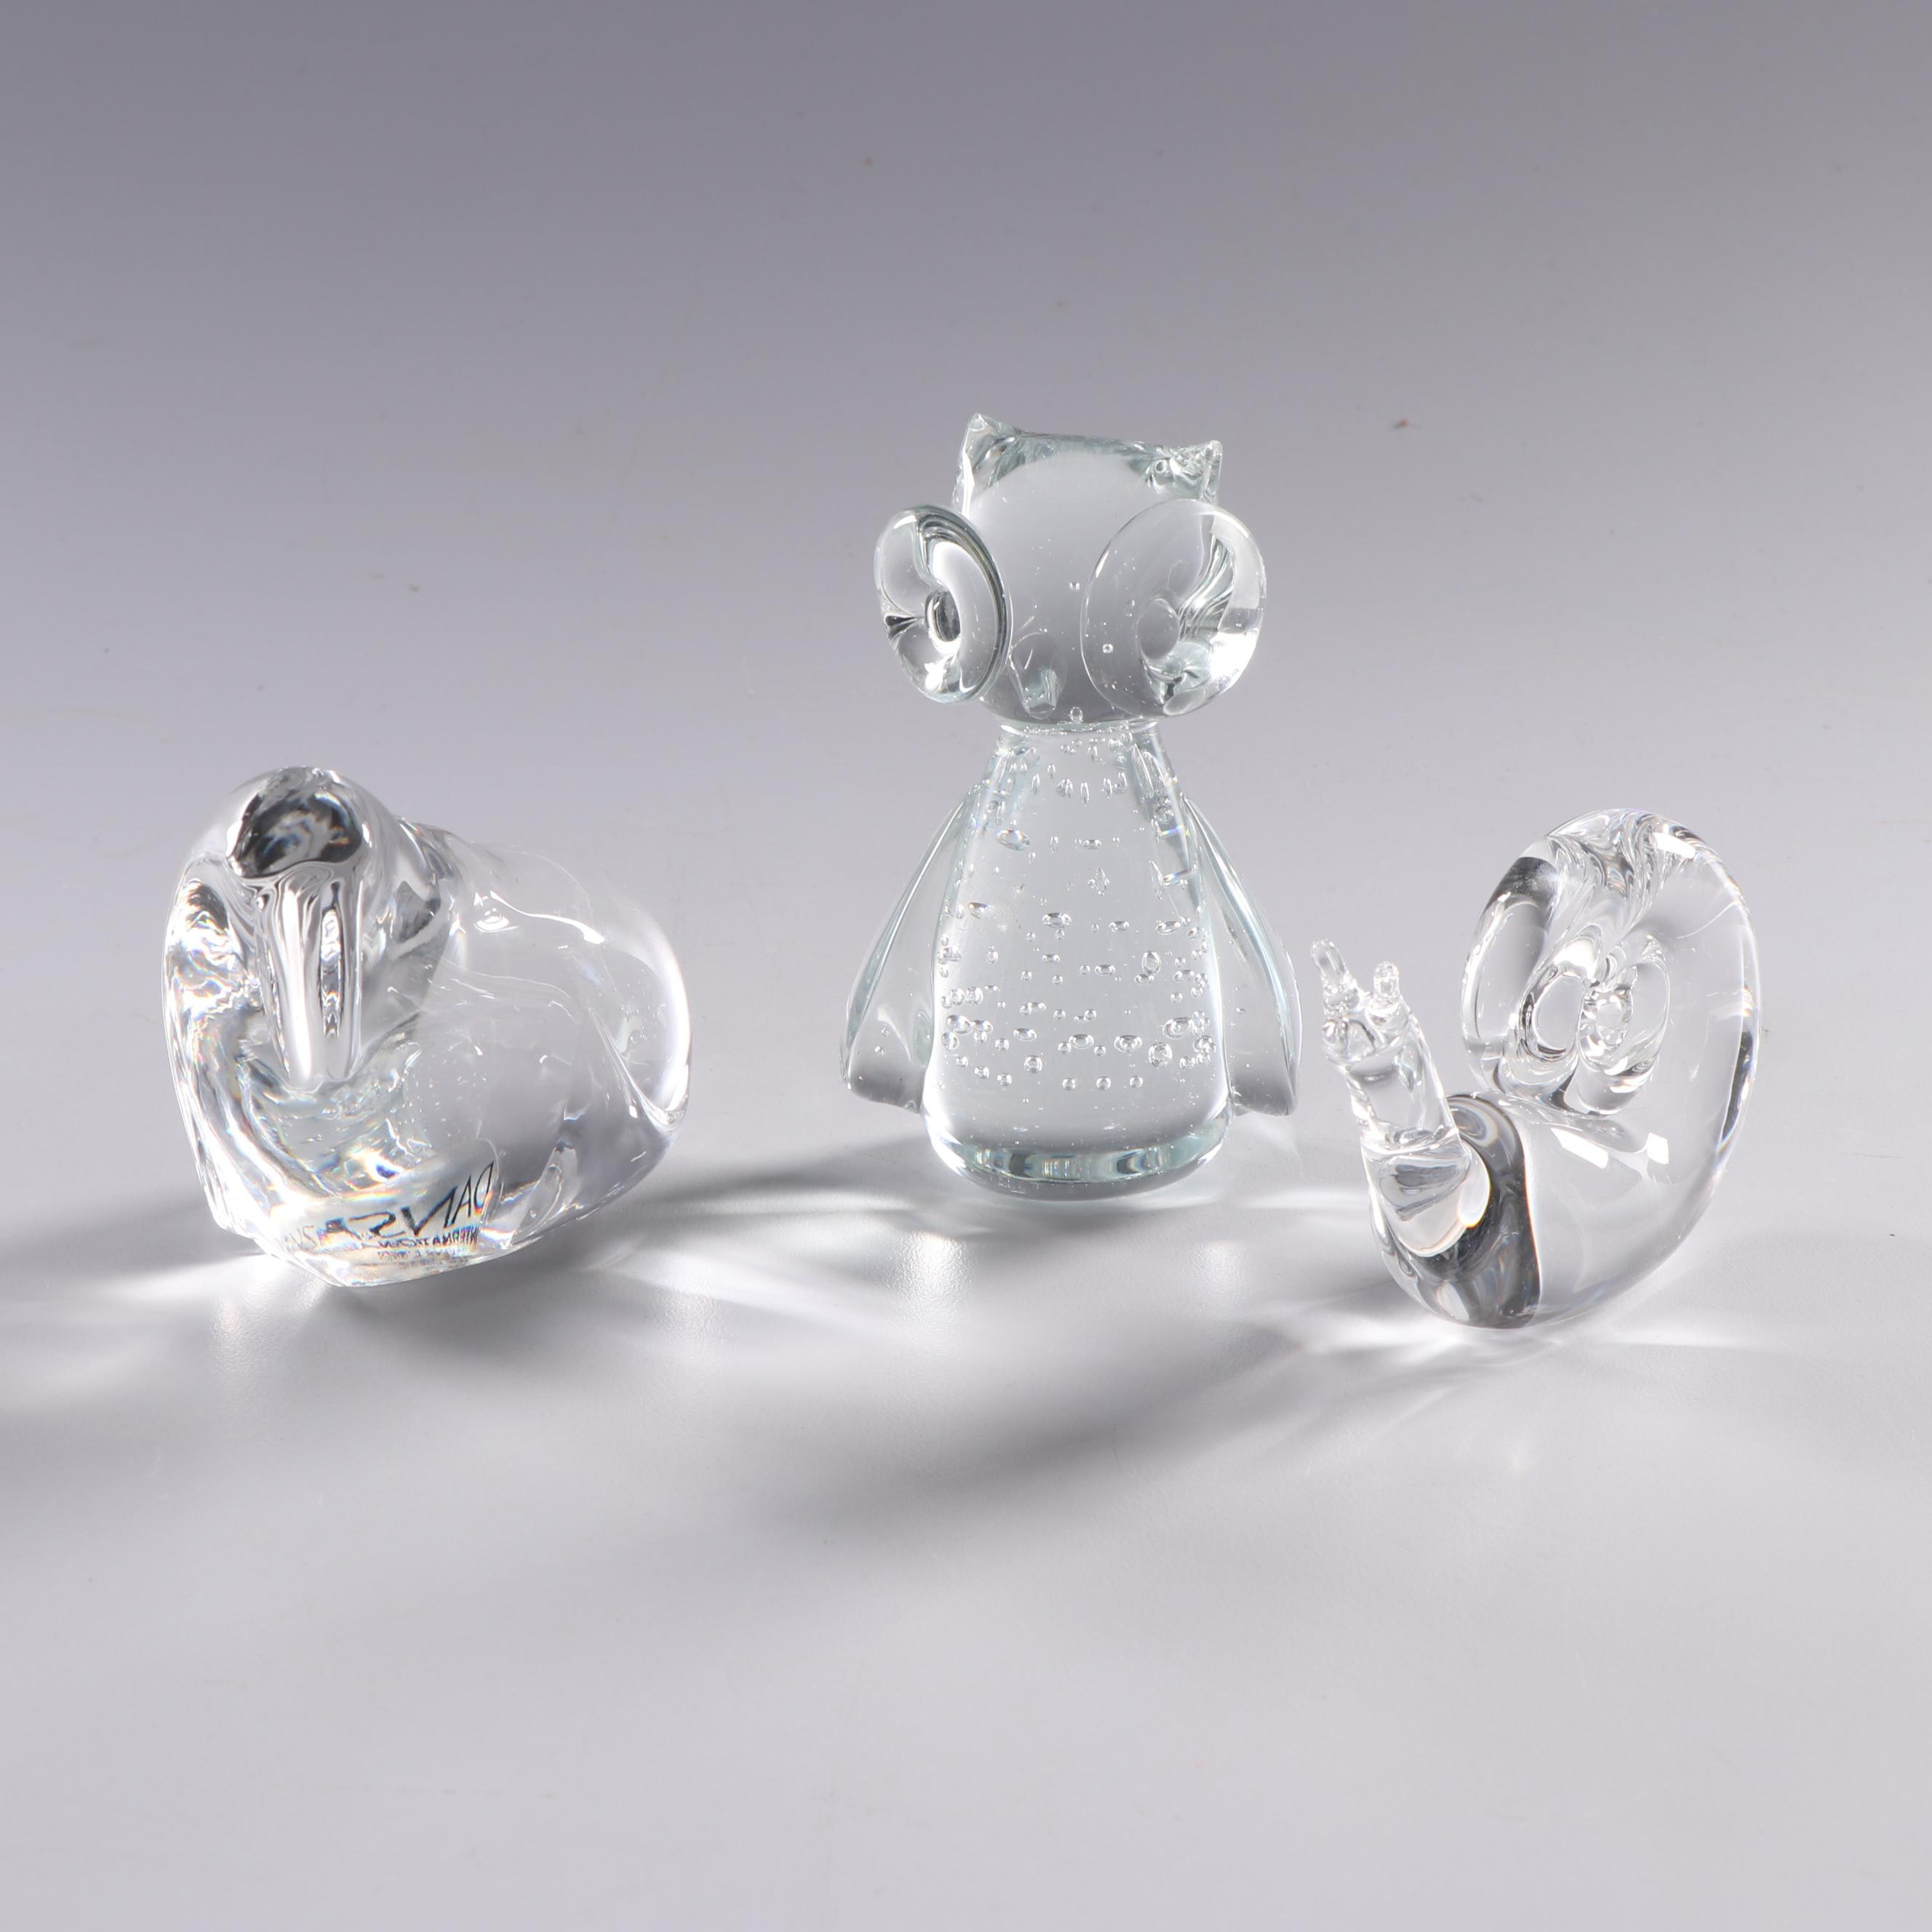 Steuben Glass and Dansk Crystal Animal Figurines